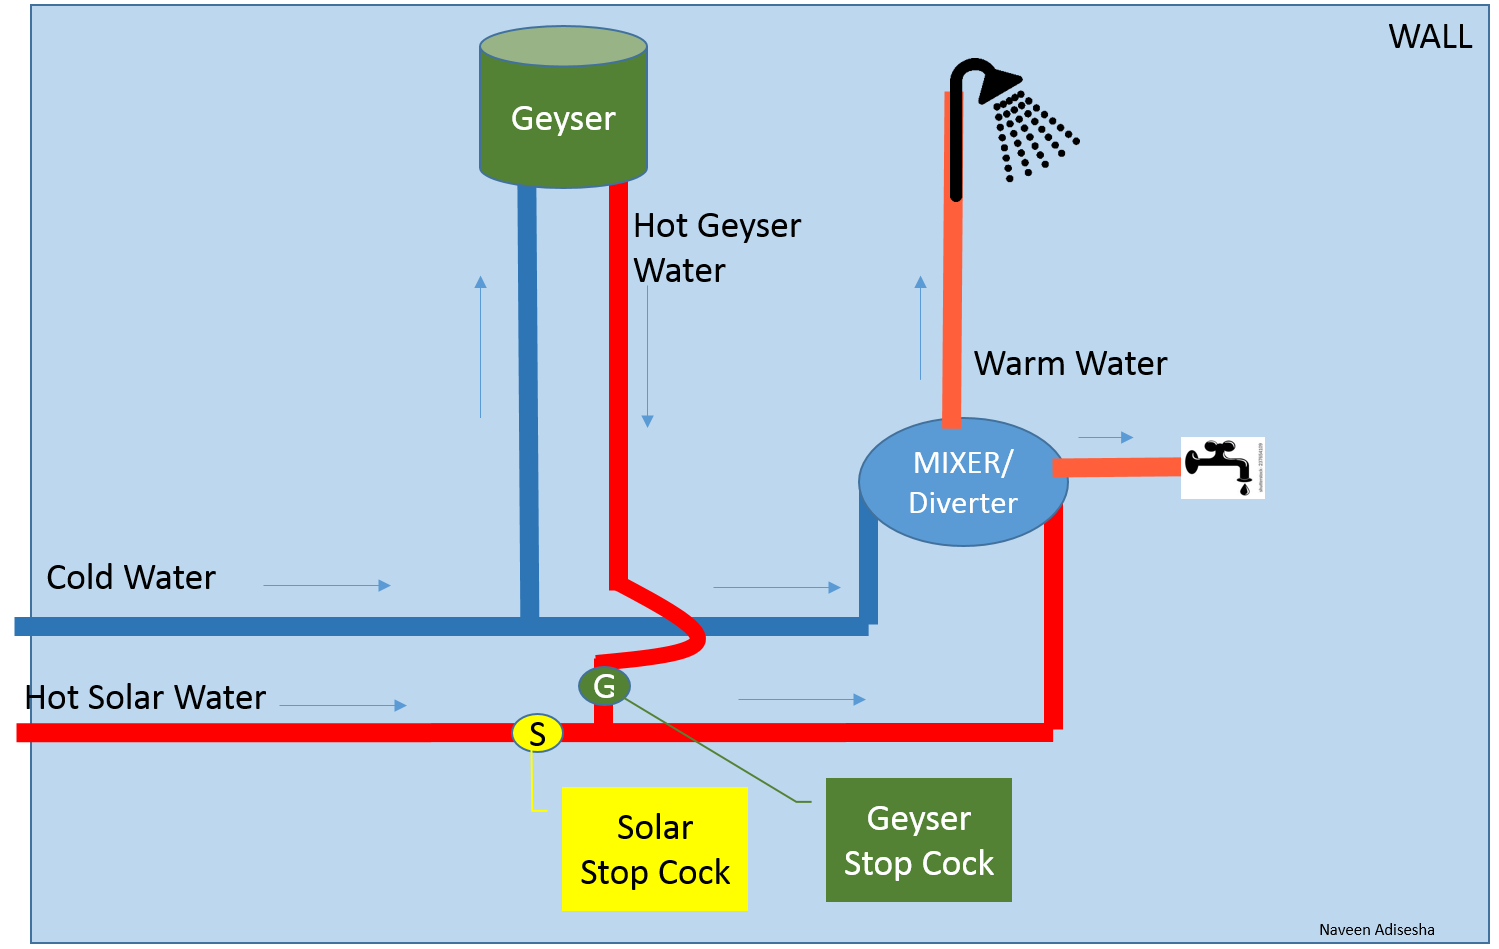 Solar And Geyser Plumbing Drawing For Bathrooms Naveen